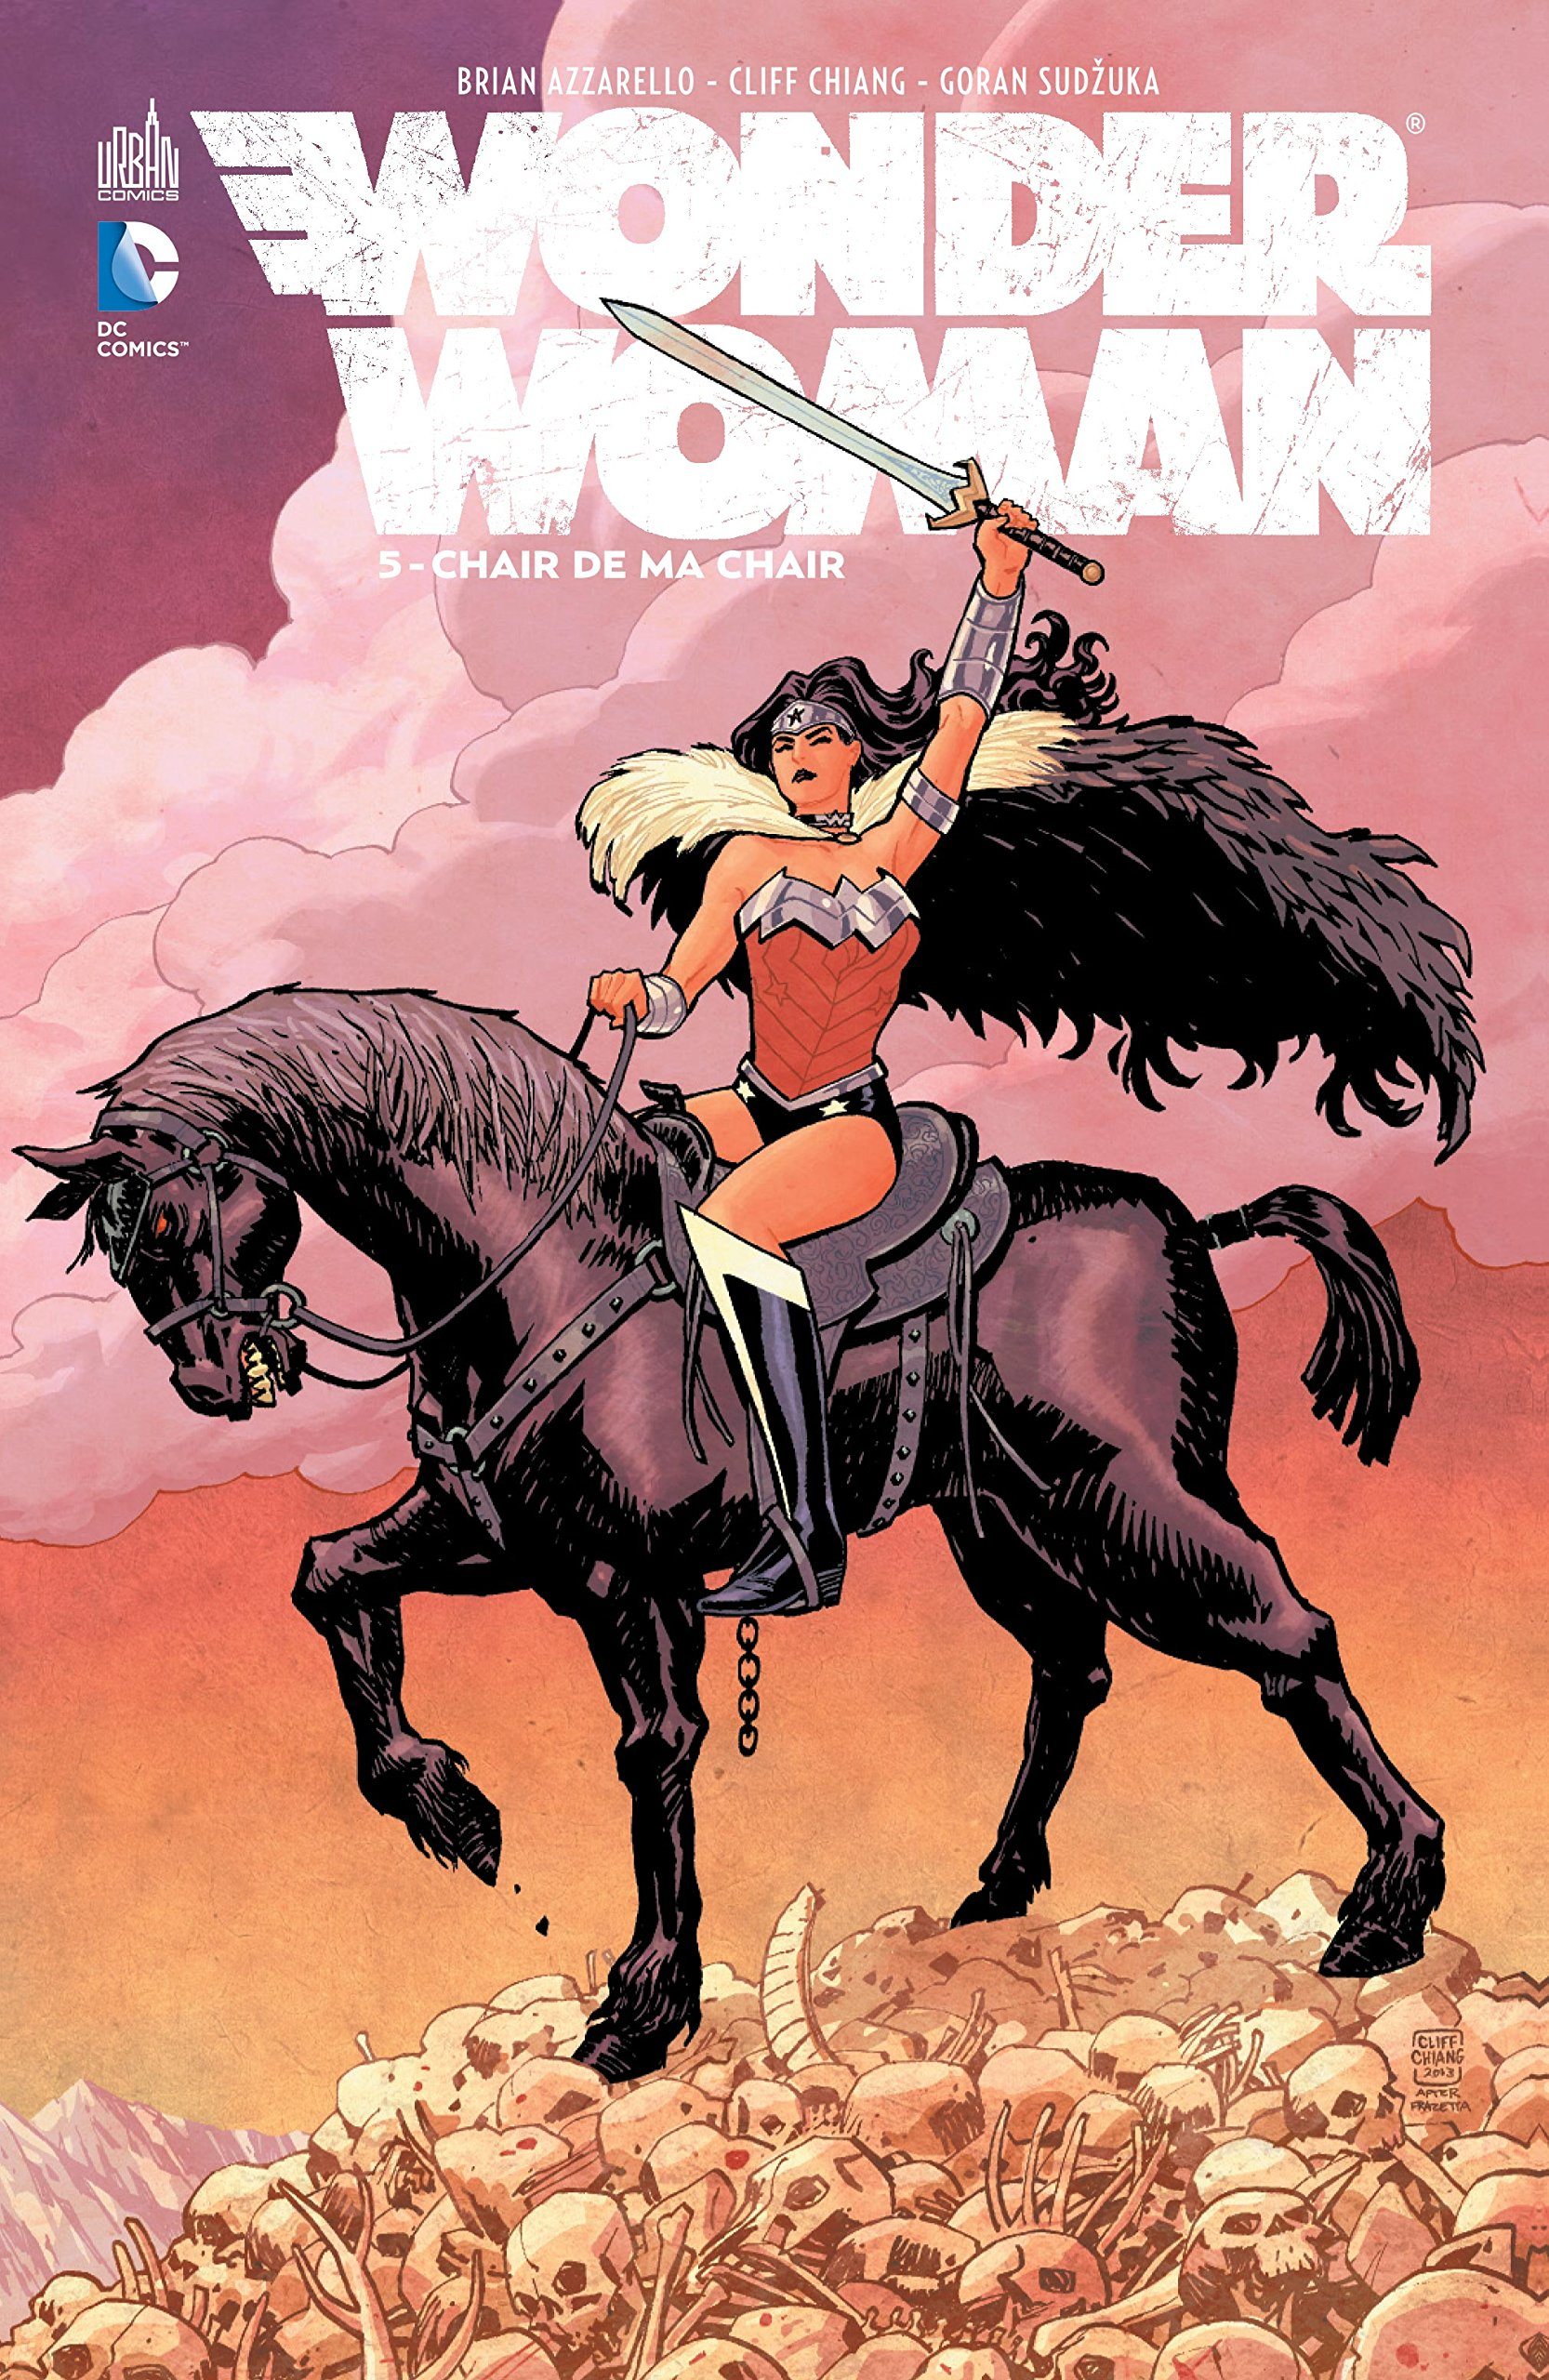 Wonder Woman Tome 5 Album – 22 mai 2015 Azzarello Brian Chiang Cliff Urban Comics 2365776477